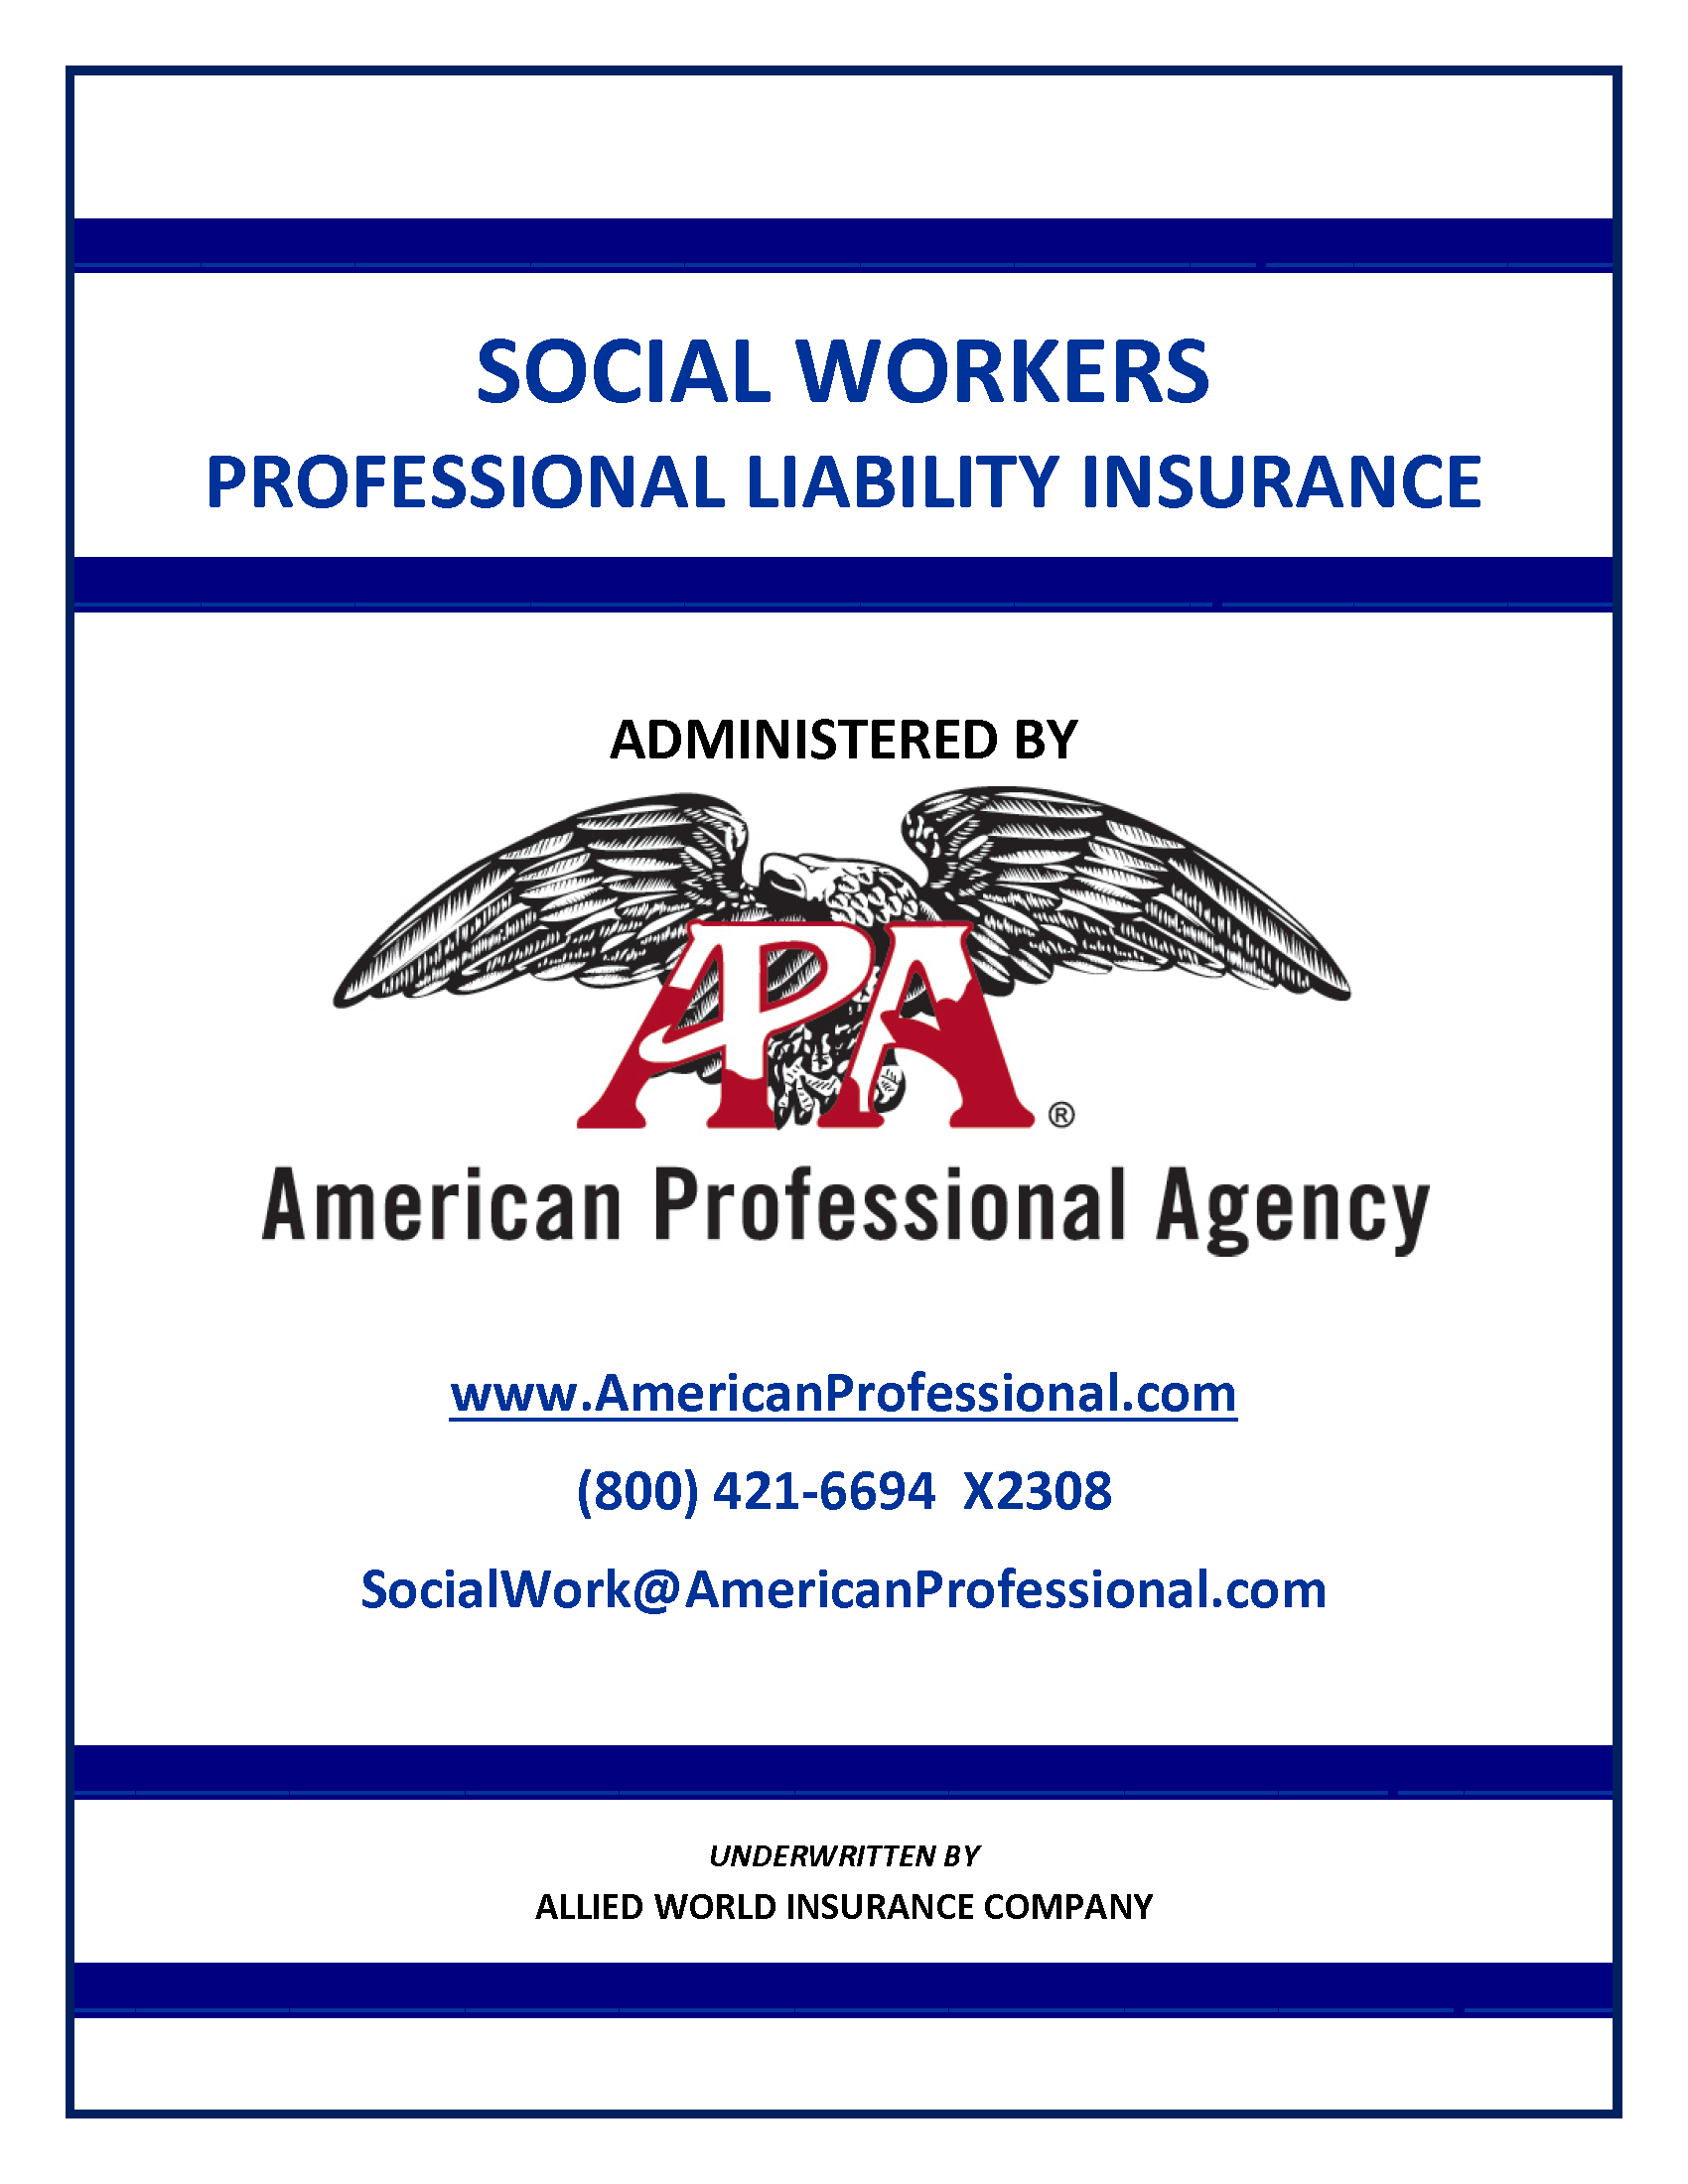 social worker no association membership or dues required policies